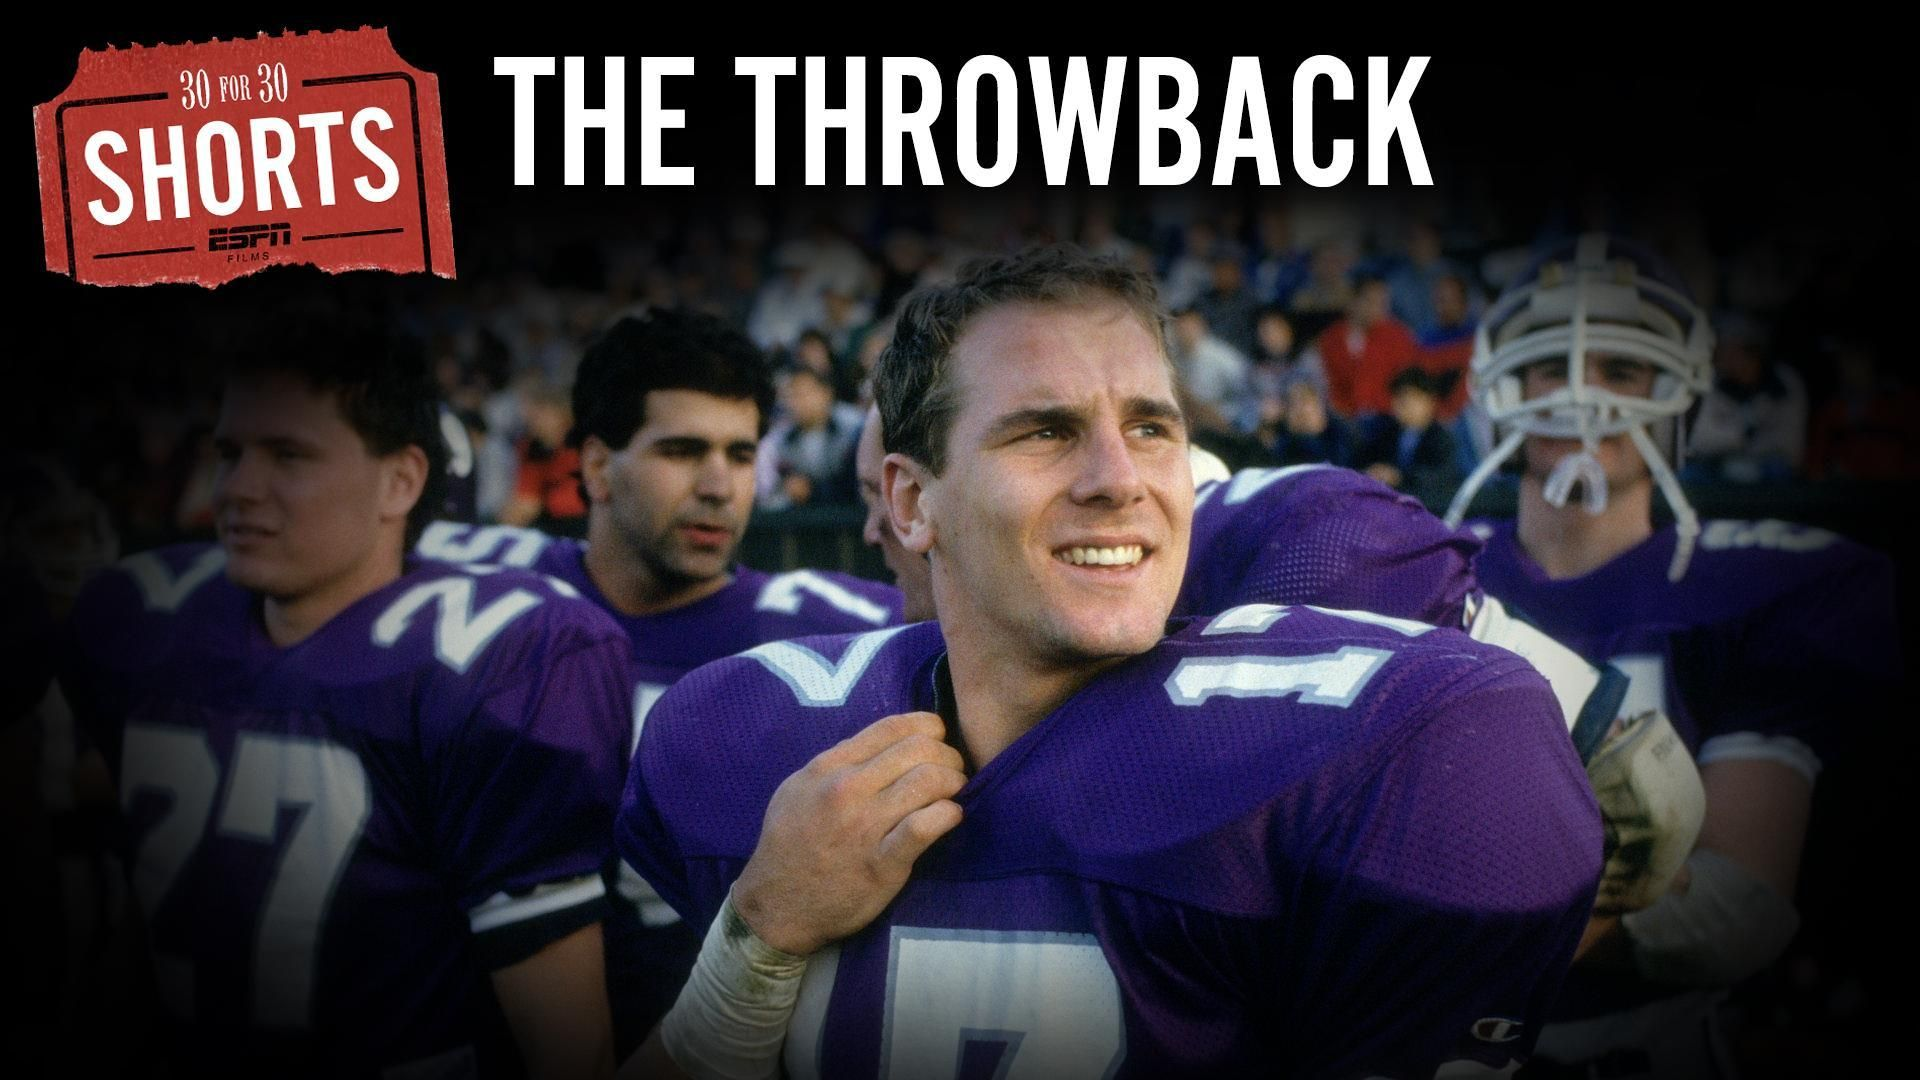 30 for 30 Shorts: The Throwback